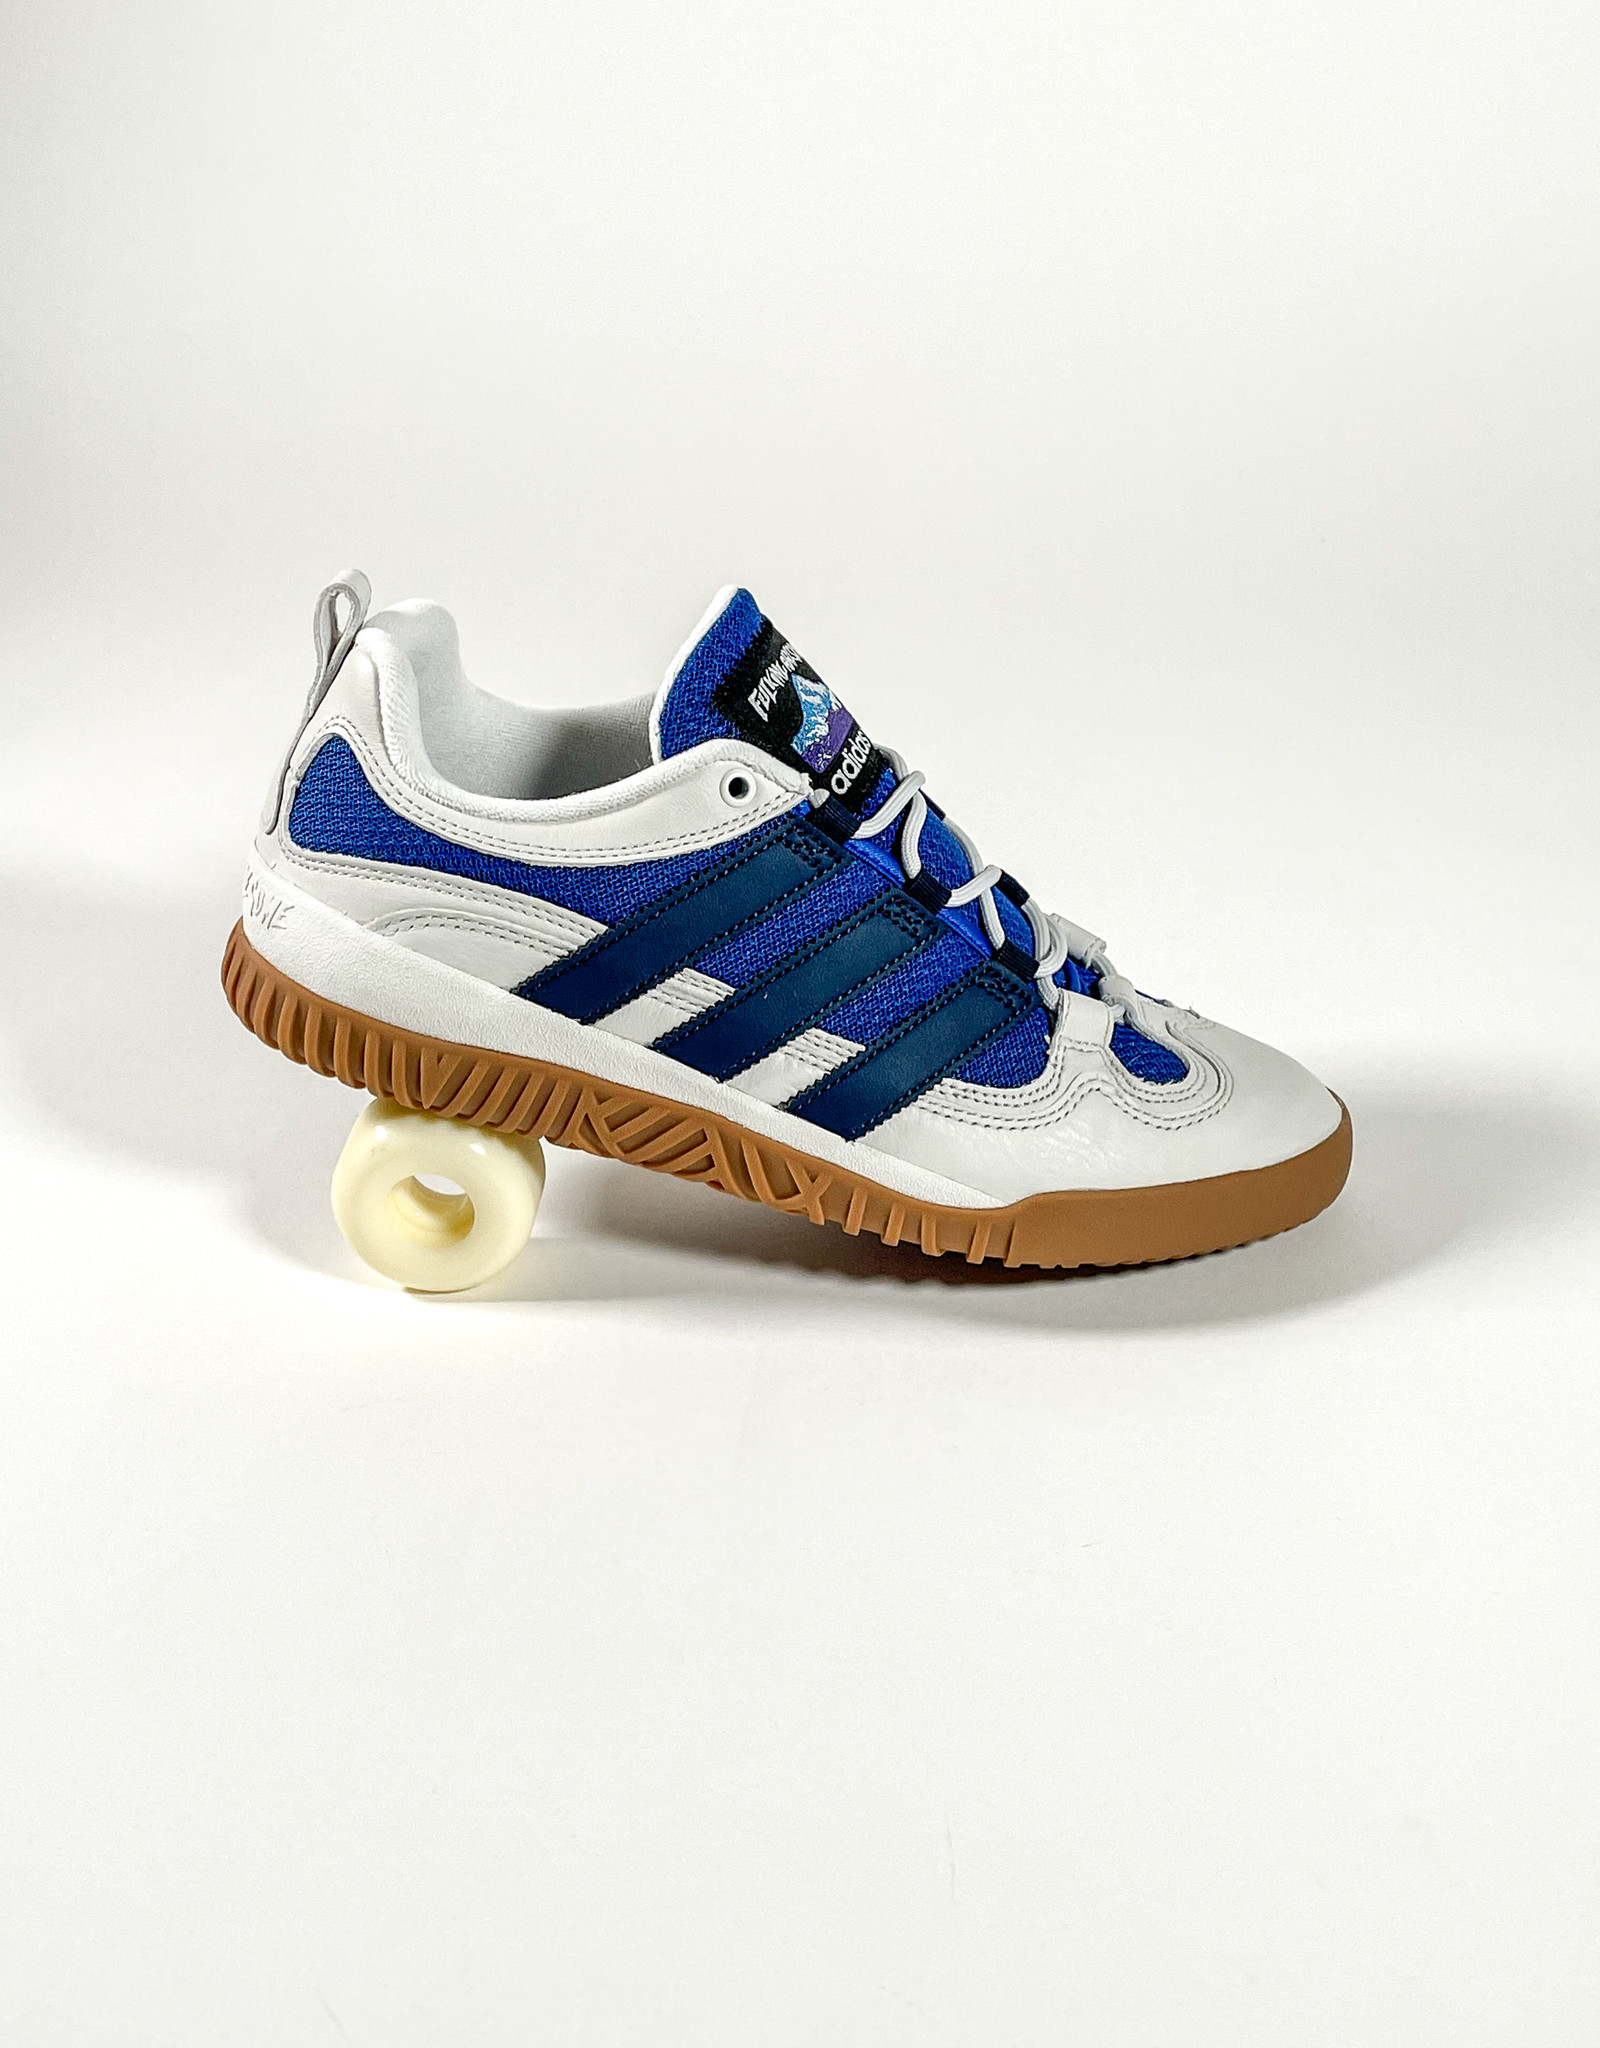 ADIDAS ADIDAS FA EXPERIMENT 1 - WHITE/NAVY/ROYAL